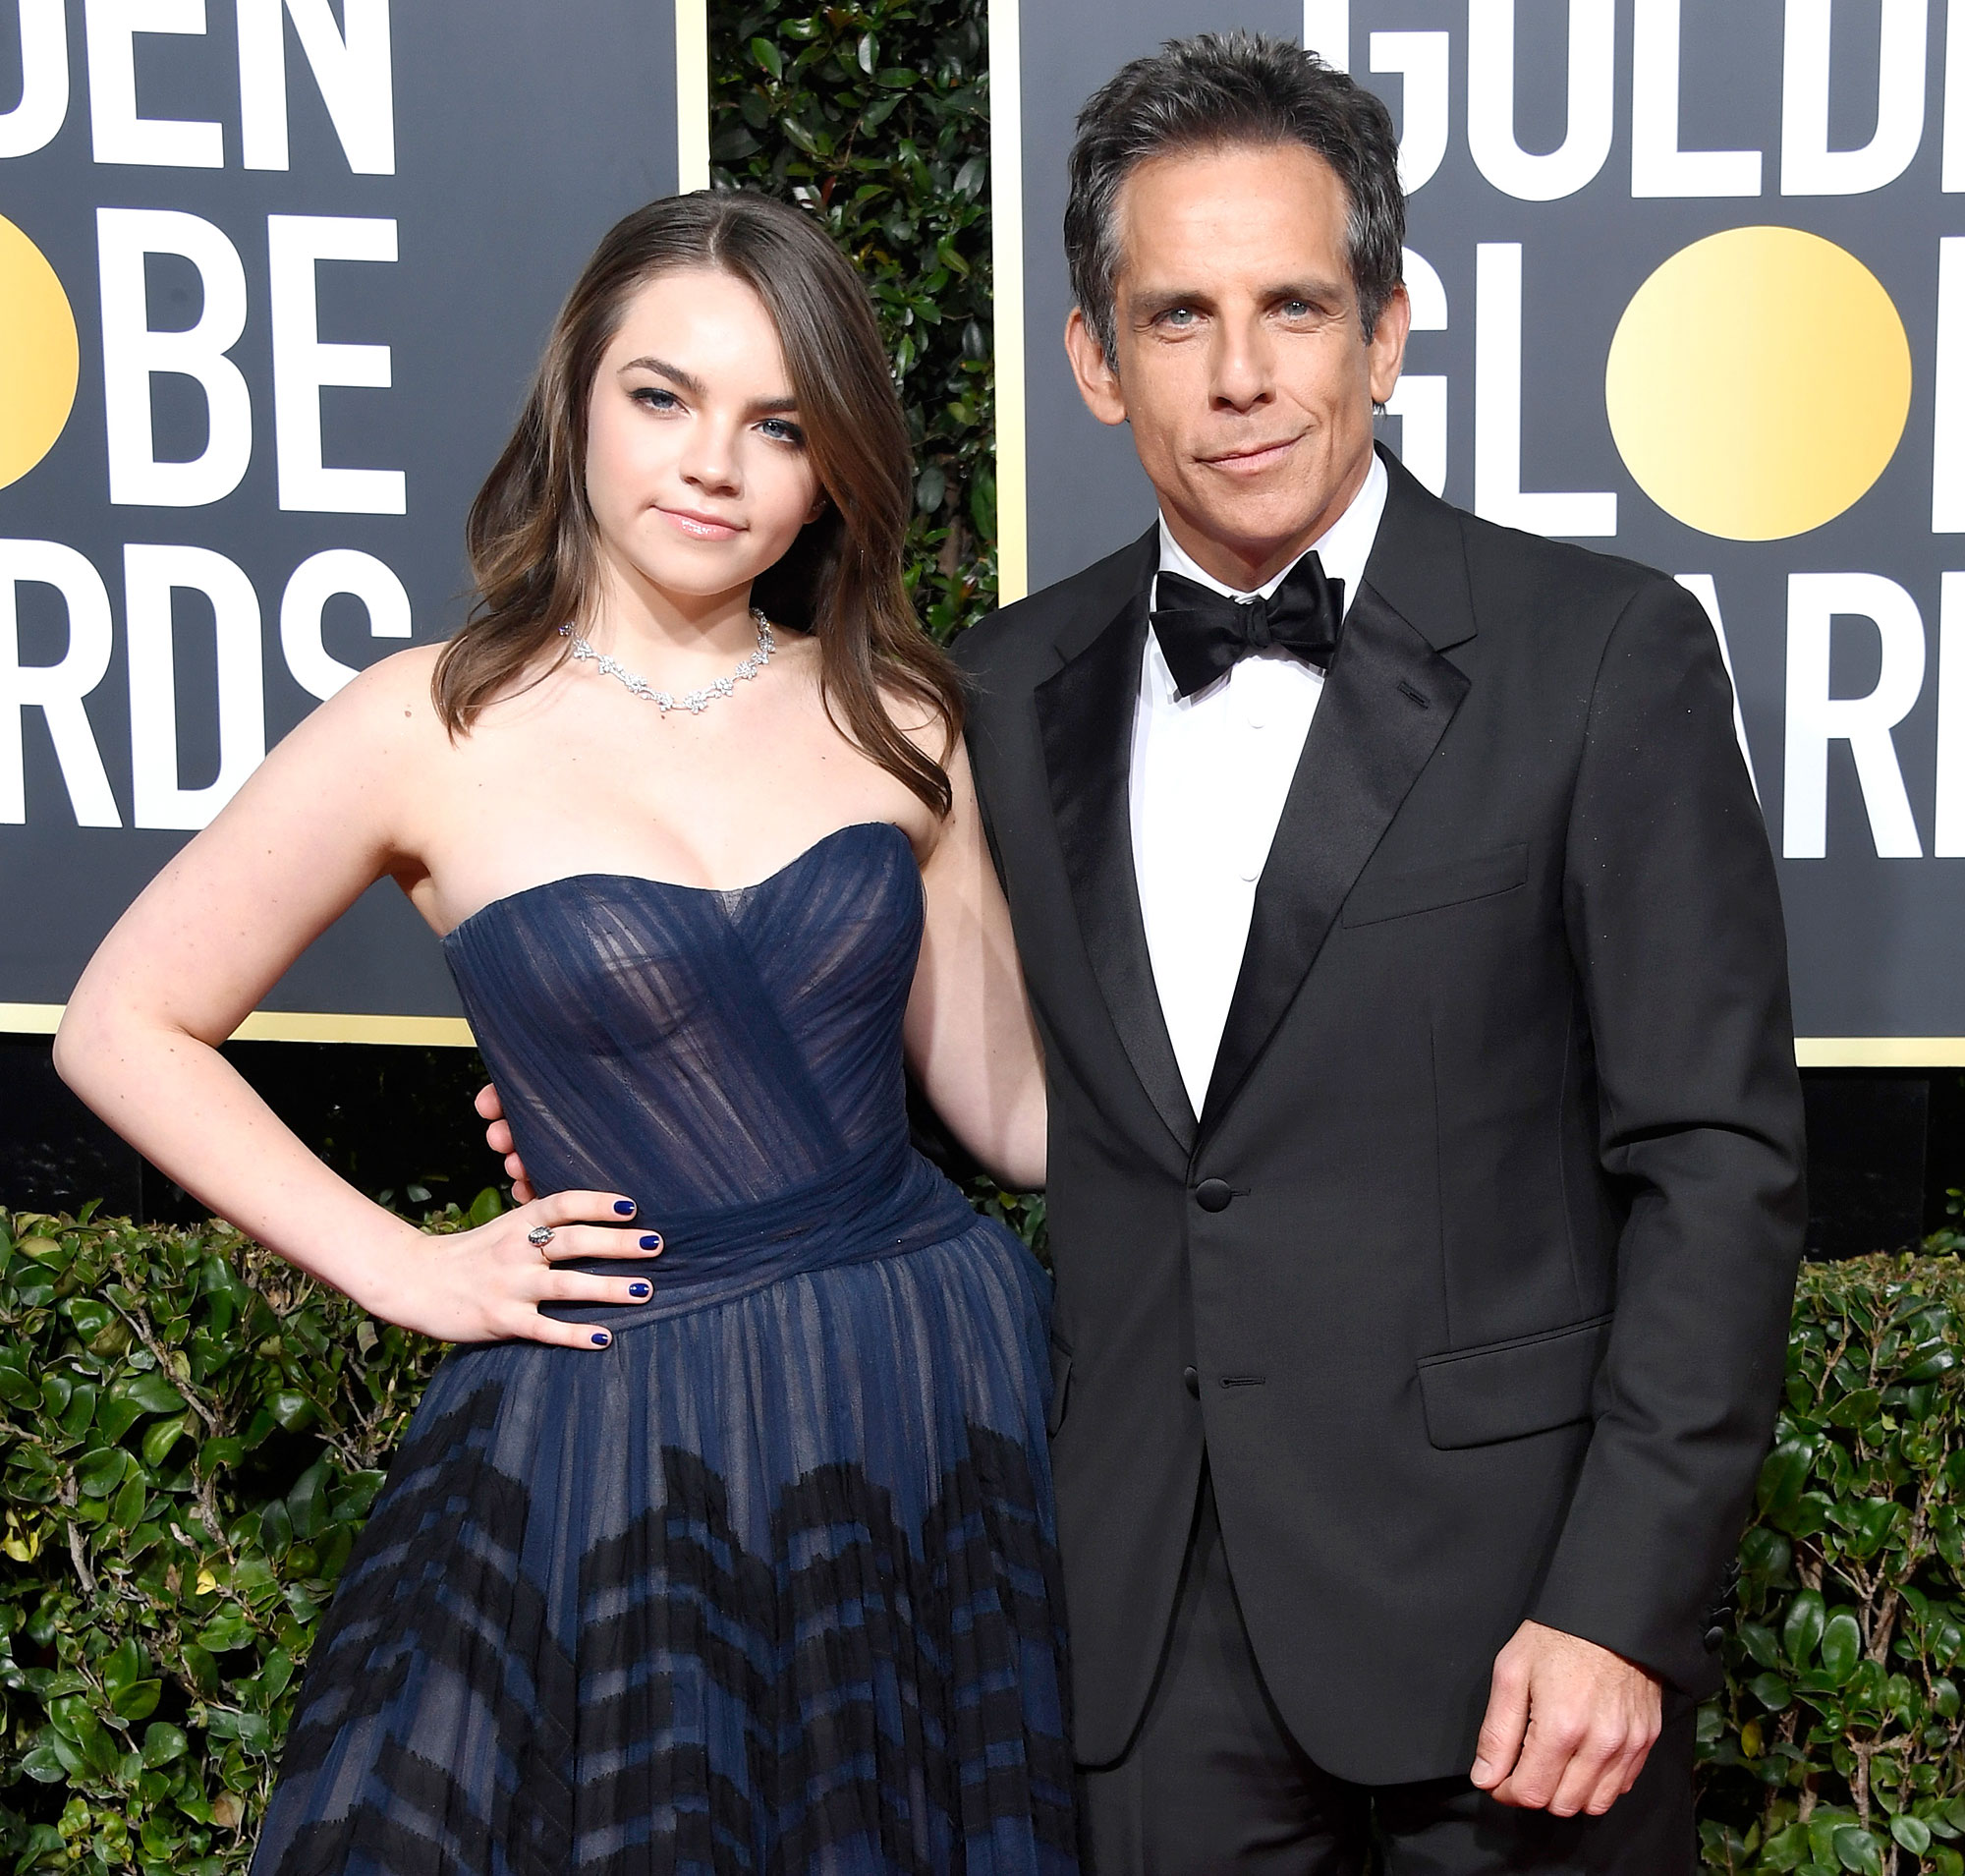 Ben Stiller Jokes Daughter Ella Football Scholarship Yale - Ella Olivia Stiller and Ben Stiller attend the 76th Annual Golden Globe Awards at The Beverly Hilton Hotel on January 6, 2019 in Beverly Hills.